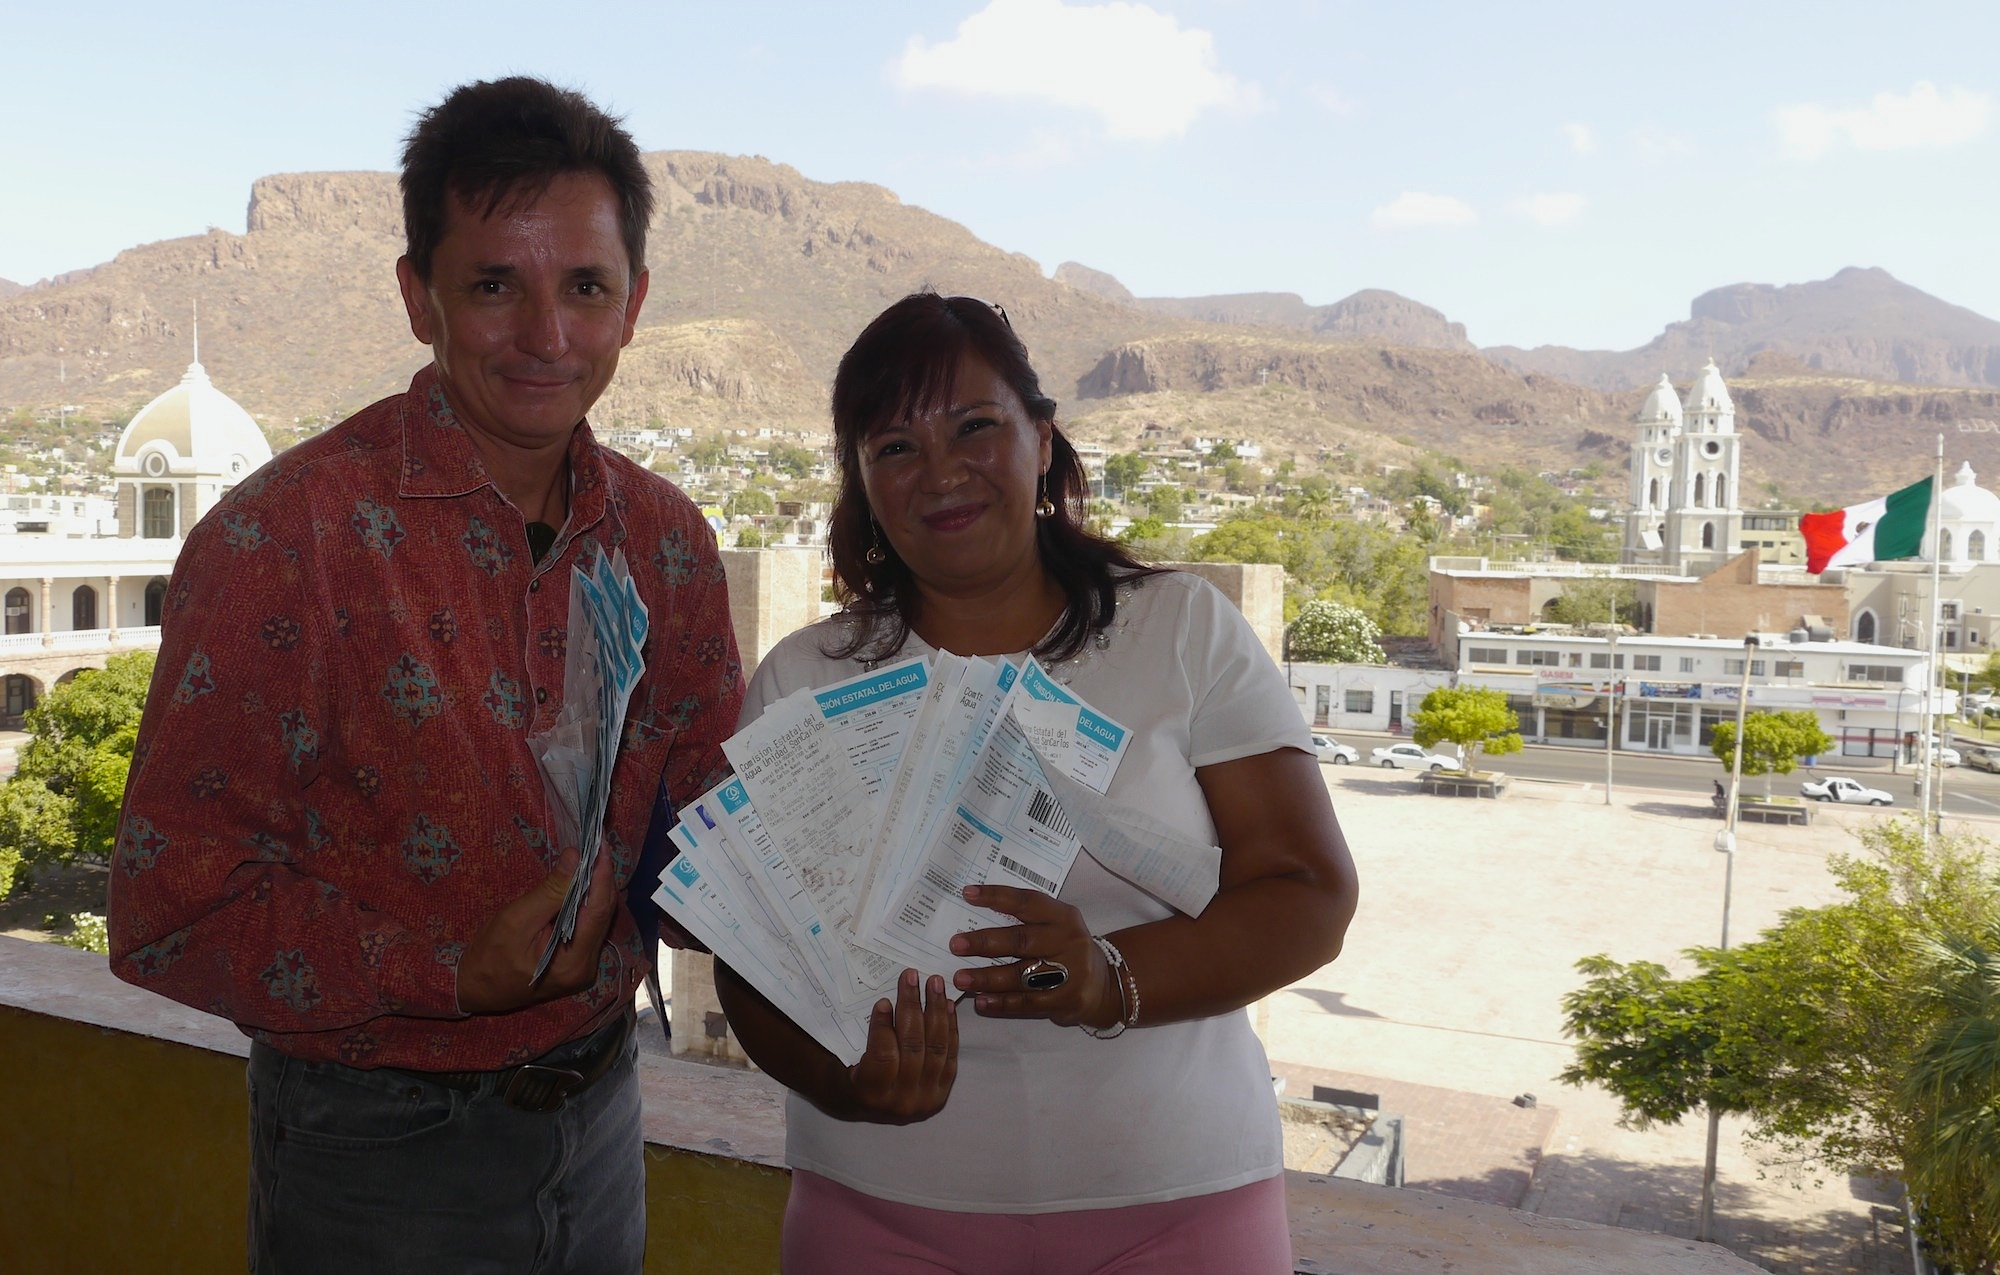 Dozens of water receipts are delivered to the Governors office in Hermosillo after radio interview with local activists